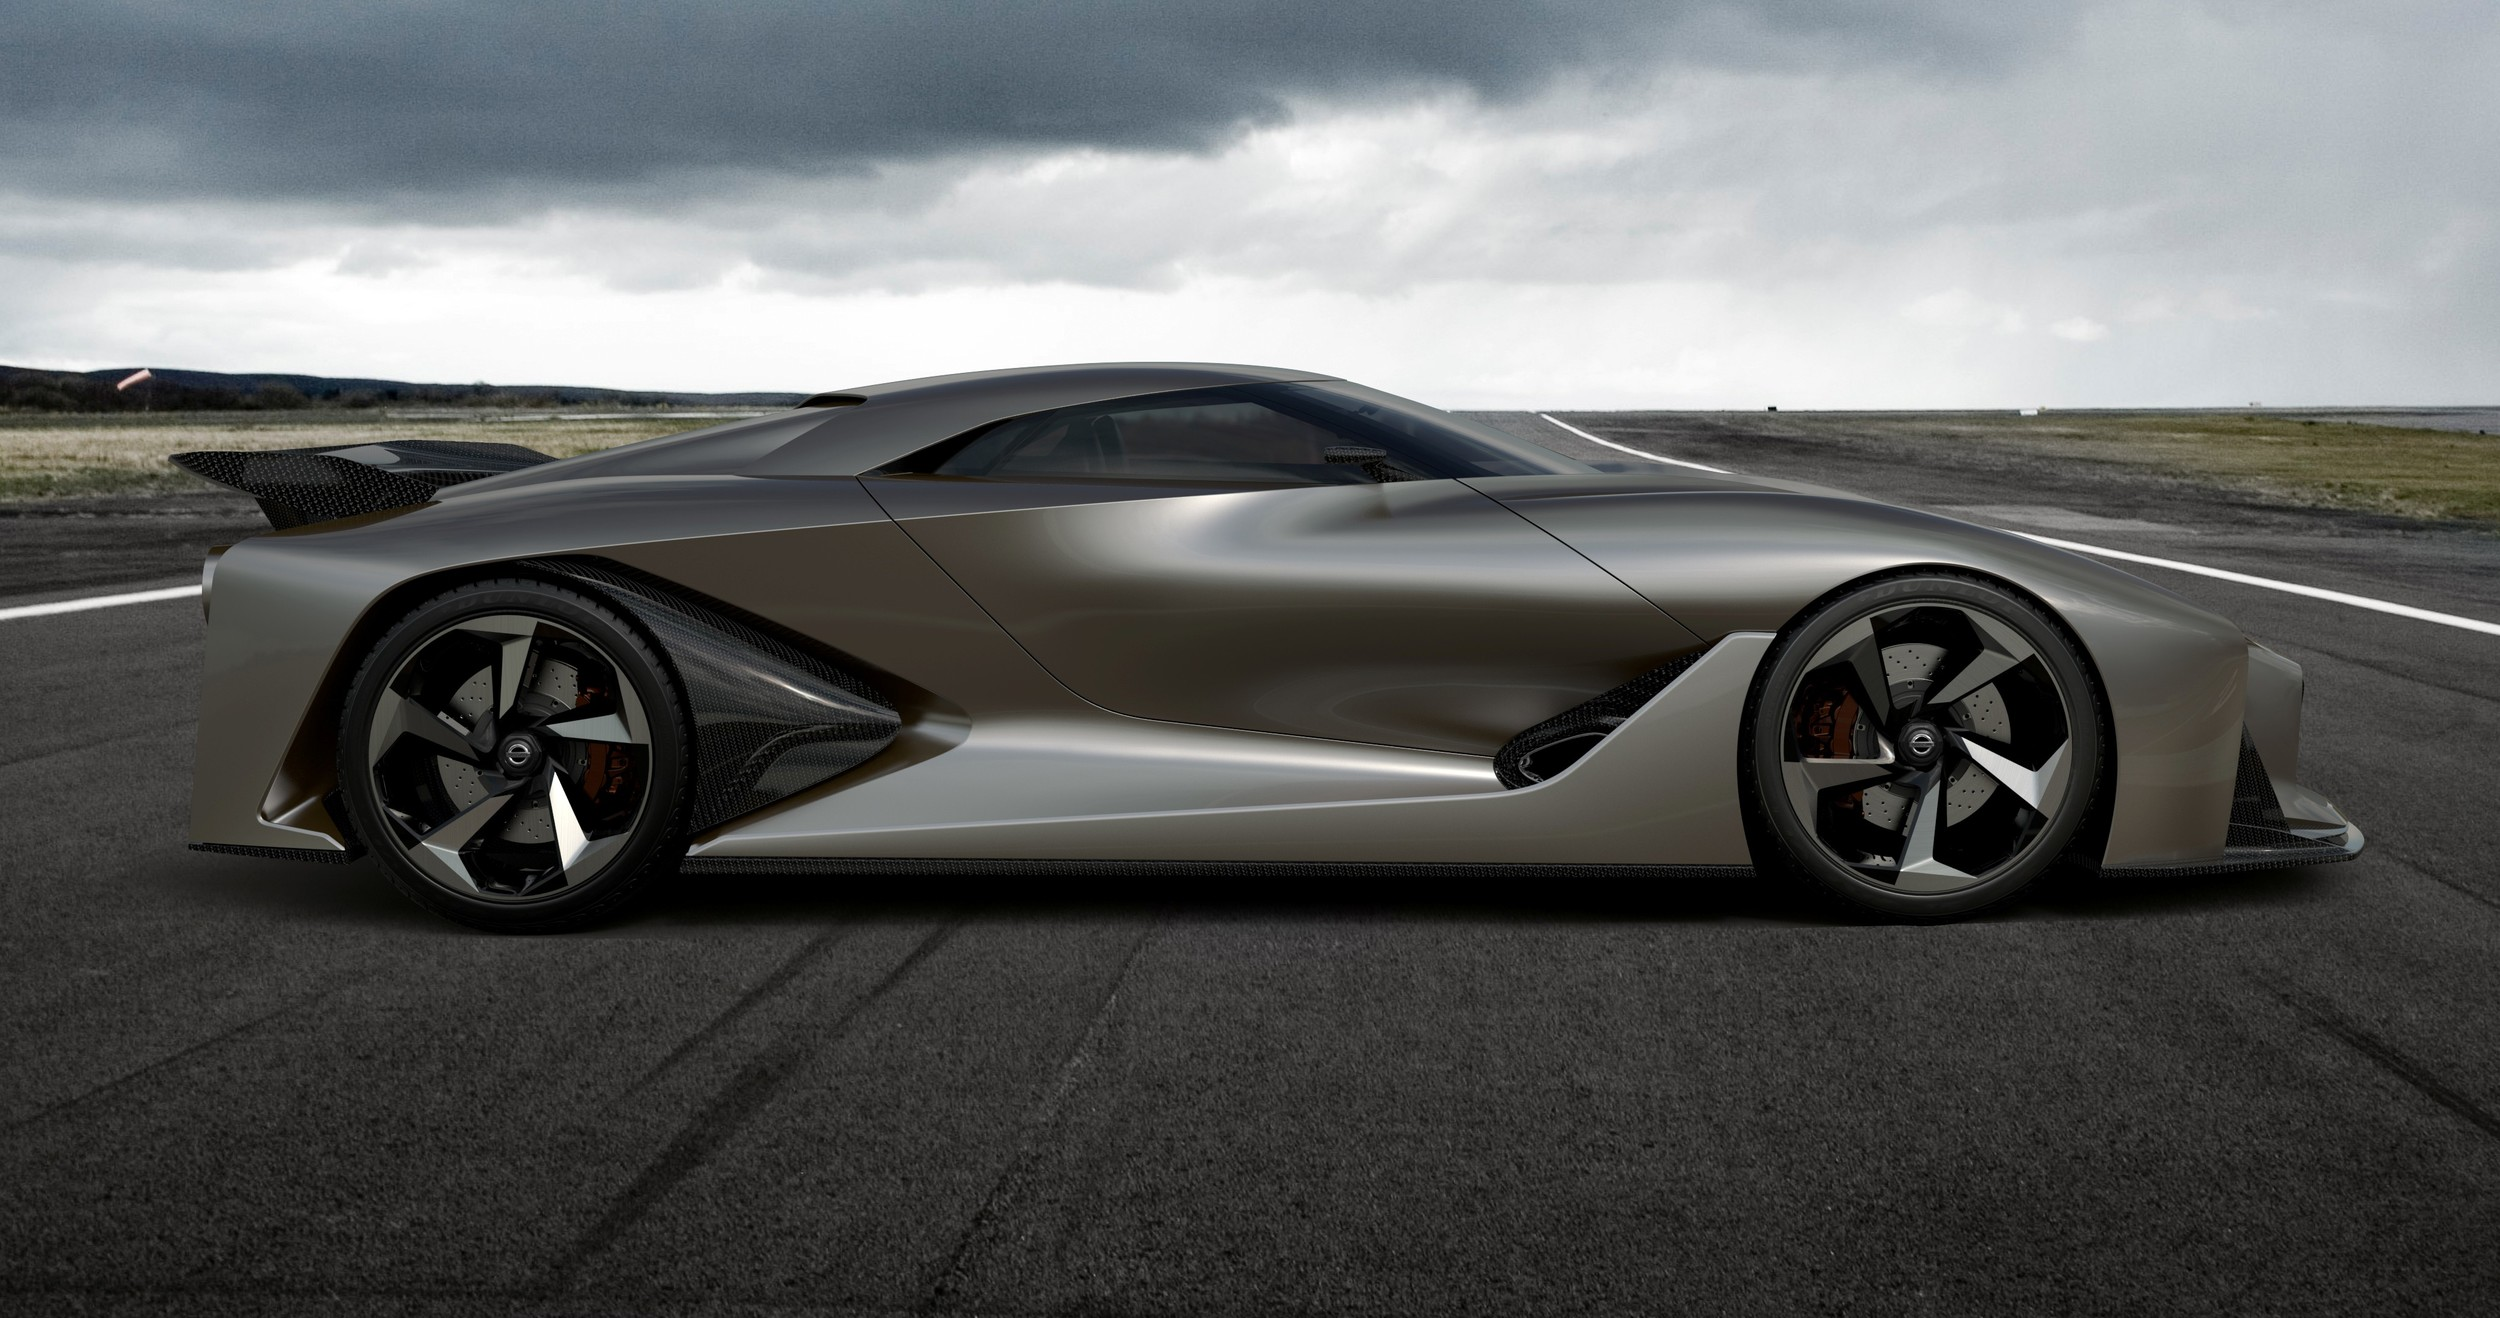 2014_Nissan_Concept_2020_Vision_Gran_Turismo_018_1949.jpg